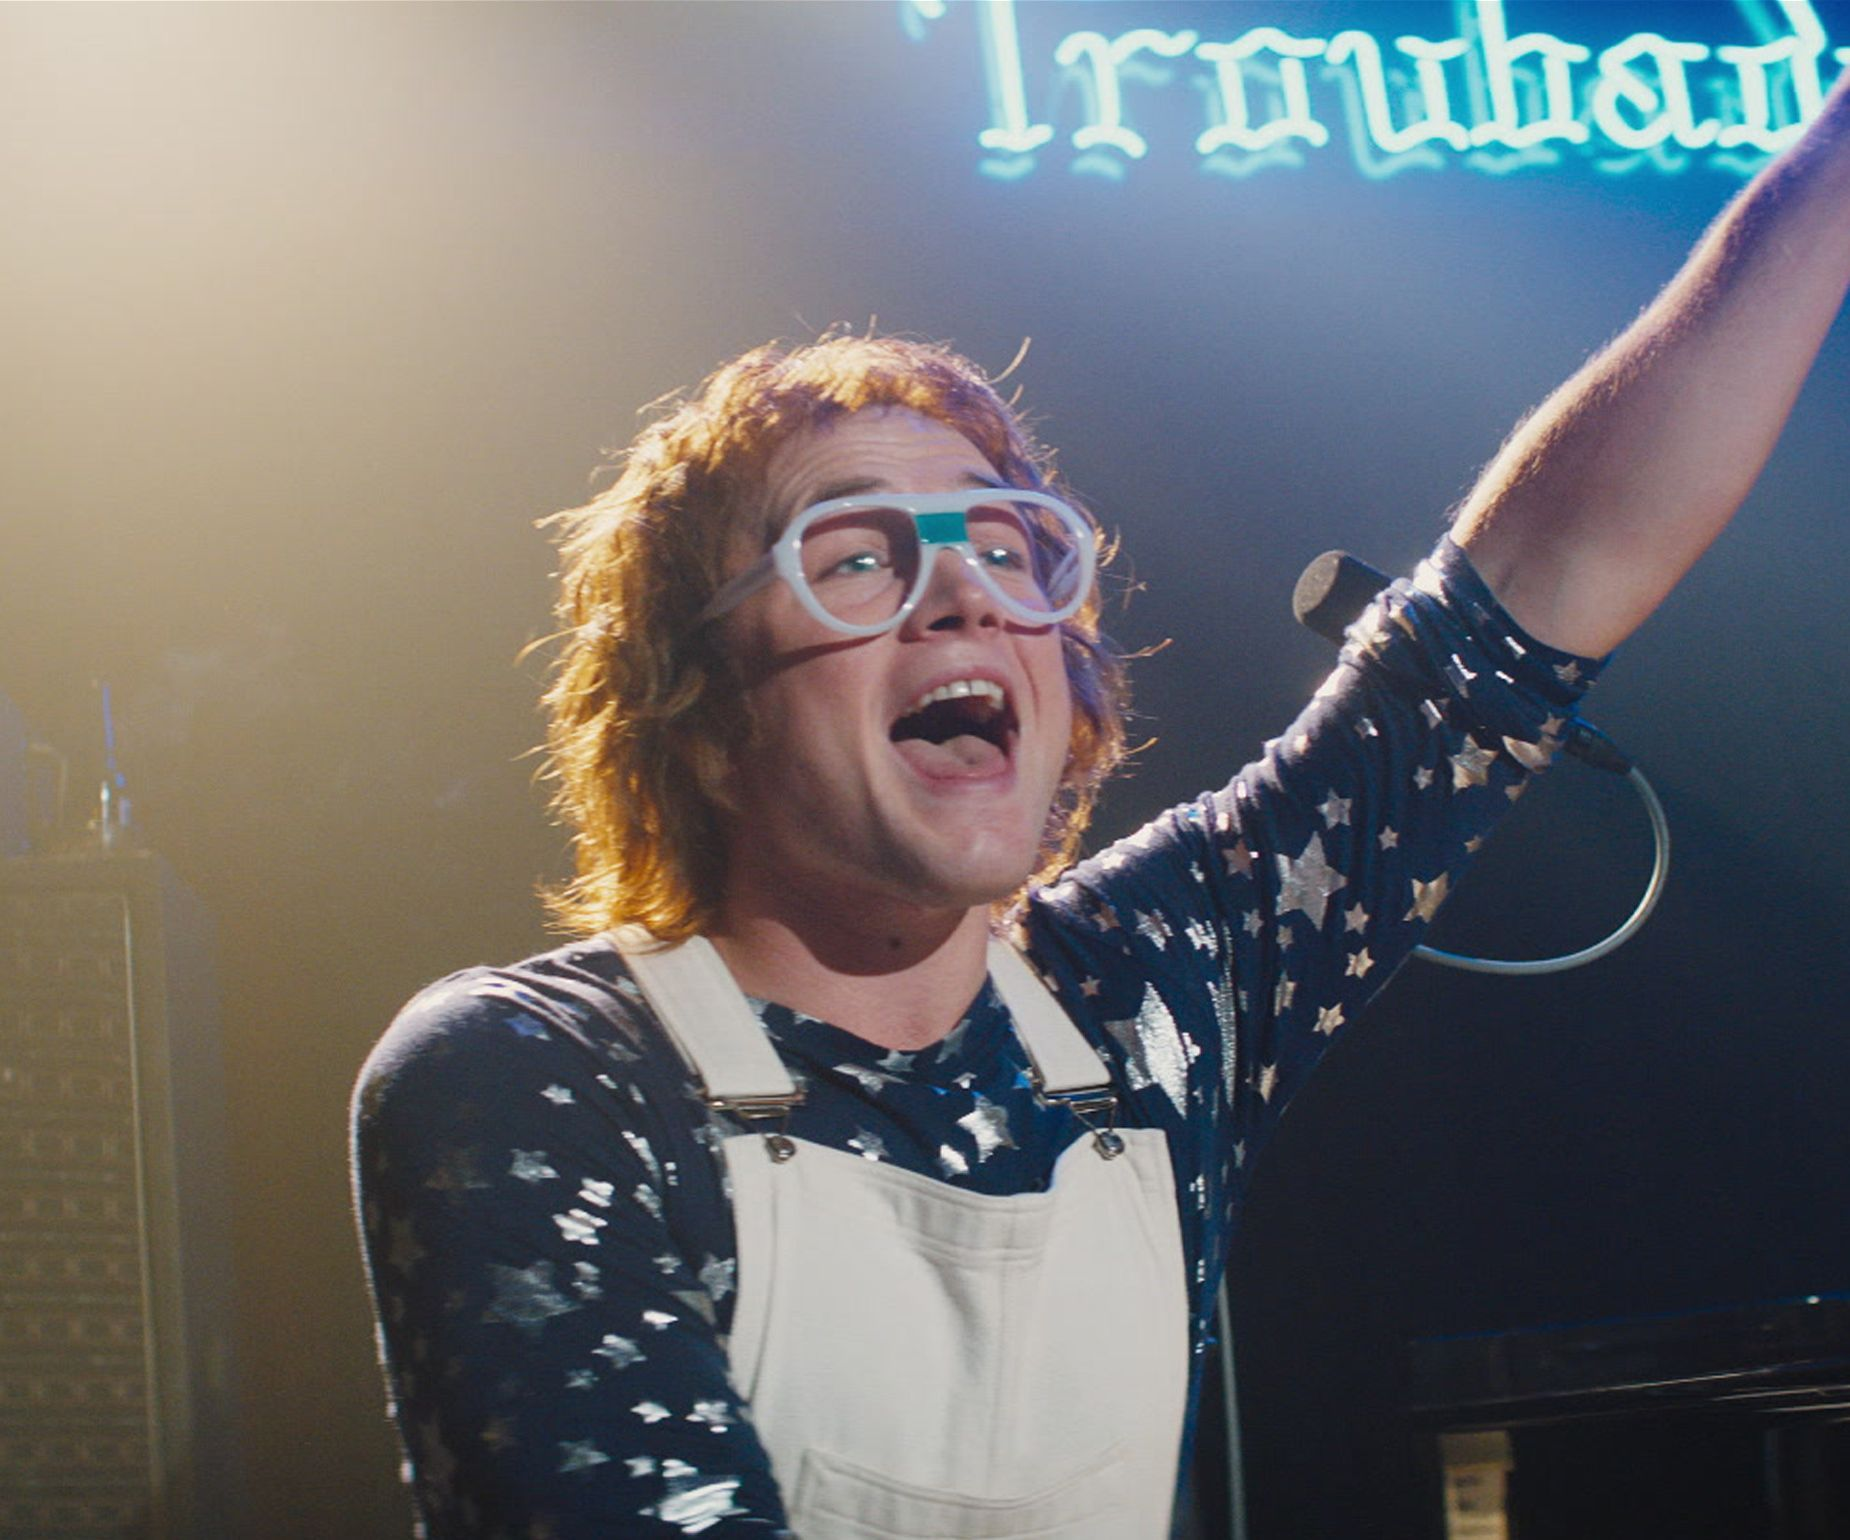 Does Taron Egerton Really Sing in Rocketman? - Hear Taron's